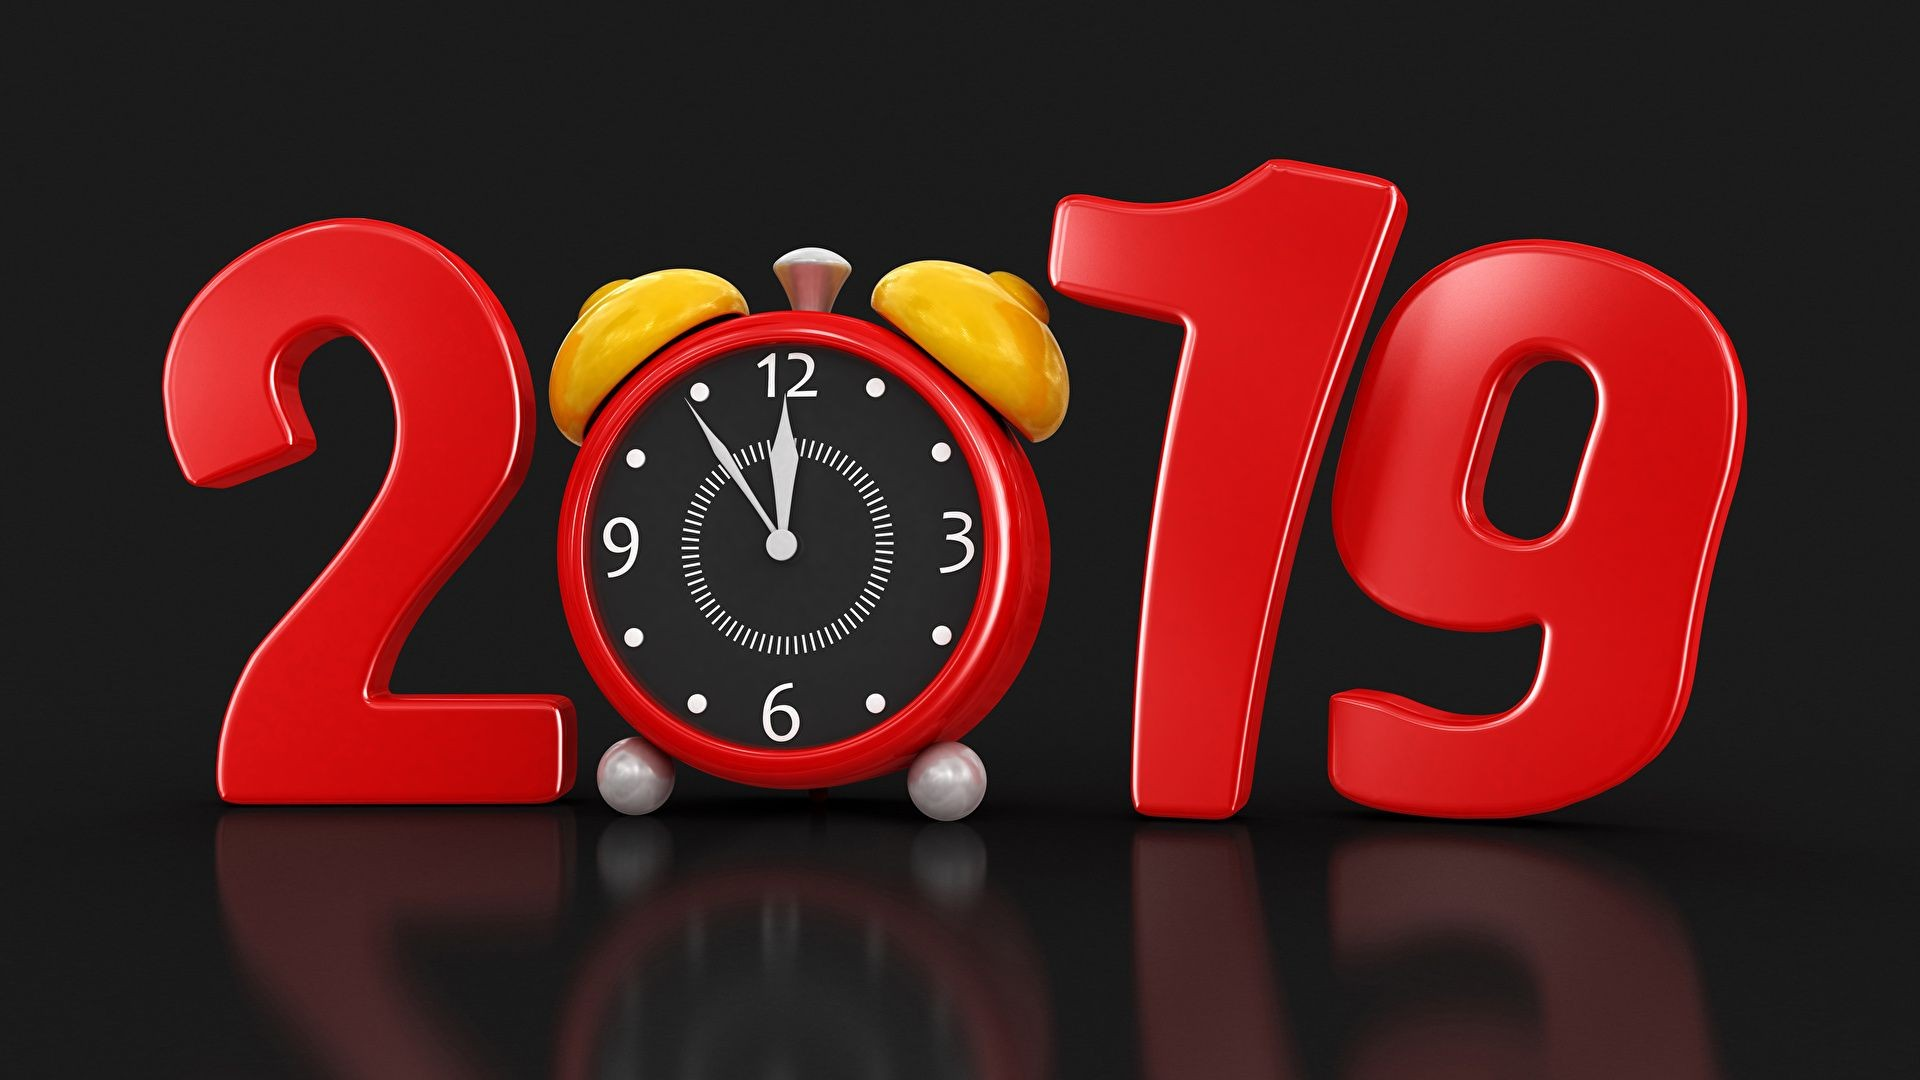 Calendario 2019 Para Venezuela Recientes A±o Nuevo Reloj Reloj Despertador Fondo Negro 2019 3d Of Calendario 2019 Para Venezuela Más Recientemente Liberado Globo by Radio Globo On Apple Podcasts